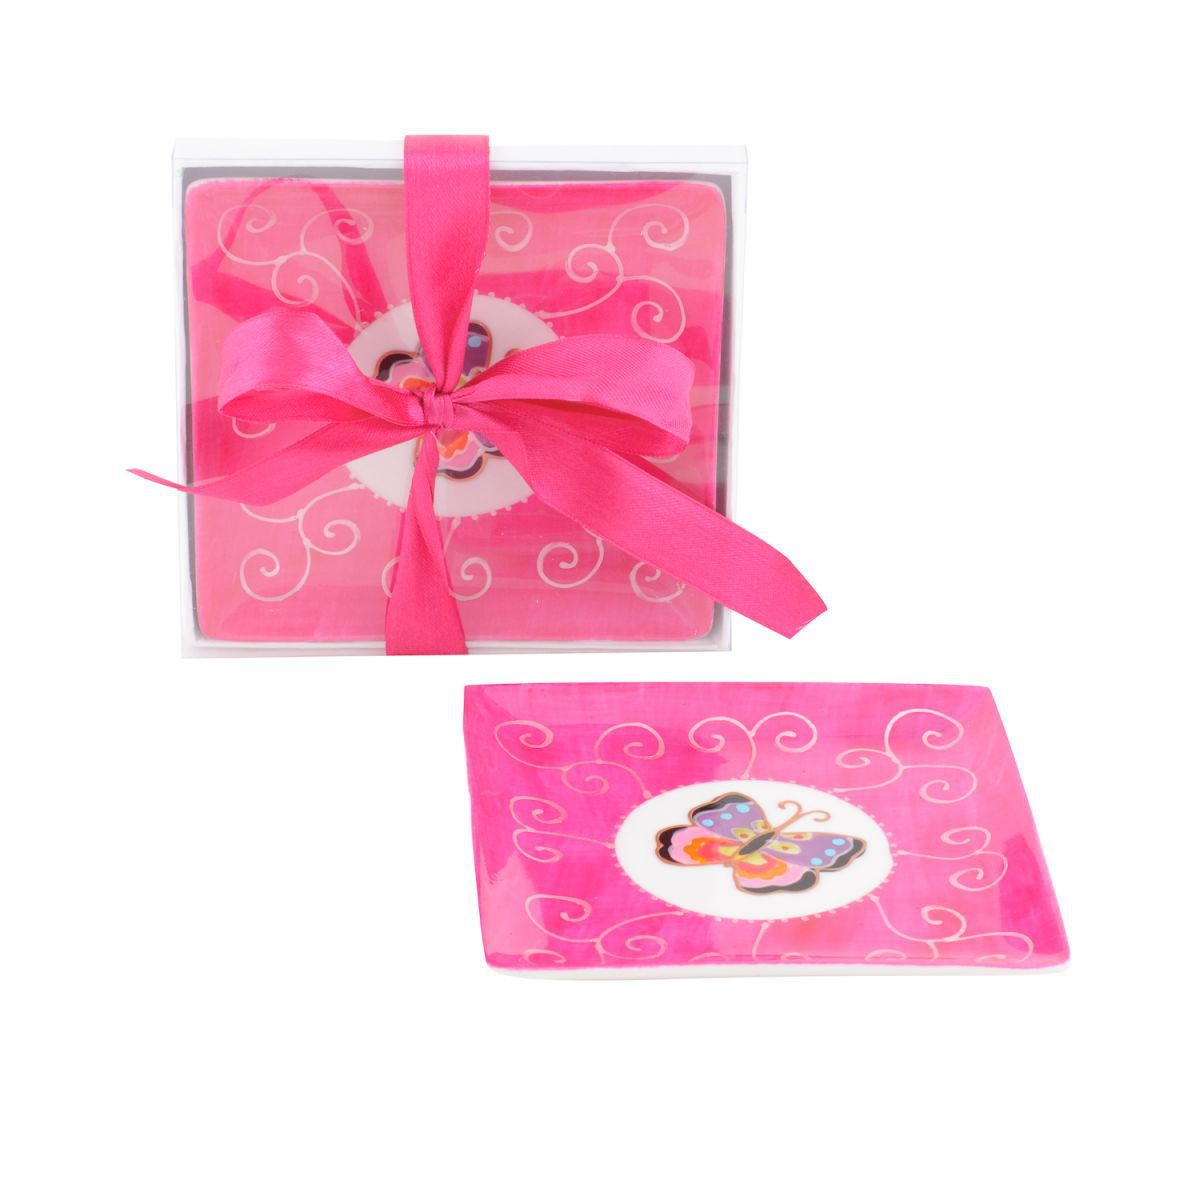 butterfly plate square pink12 x 12 cm